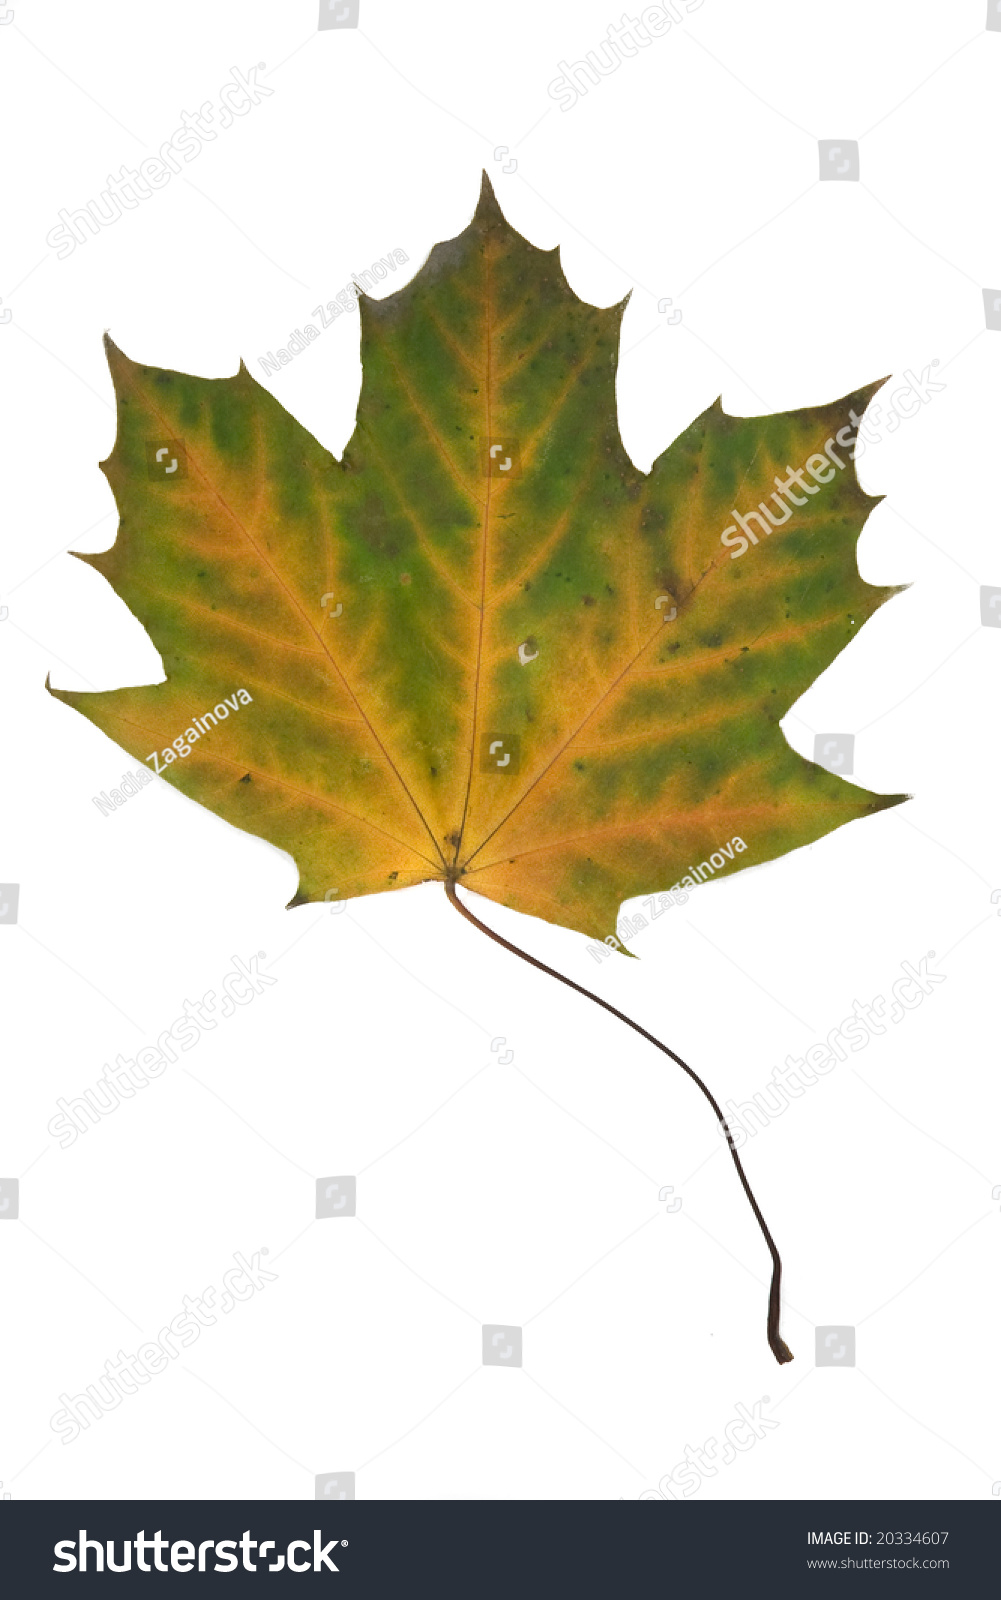 Multy colored dried maple leaf canadian stock photo 20334607 multy colored dried maple leaf canadian symbol biocorpaavc Choice Image